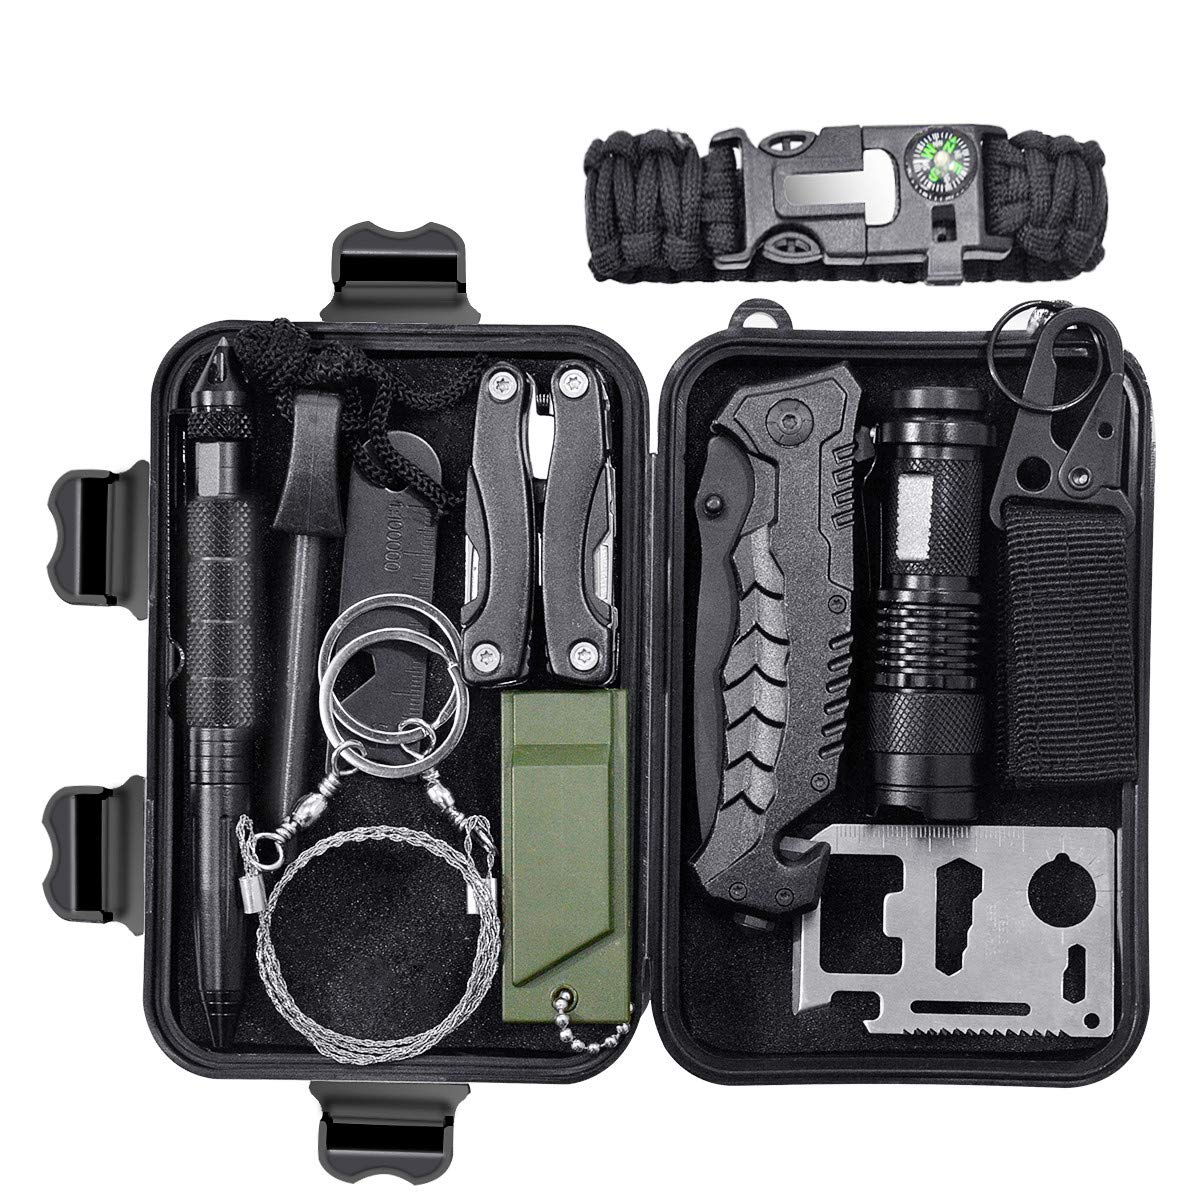 Military Shockproof Survival Kit Case Waterproof Airtight Camping Travel Gear Carry Emergency Box Online Shop Camping & Hiking